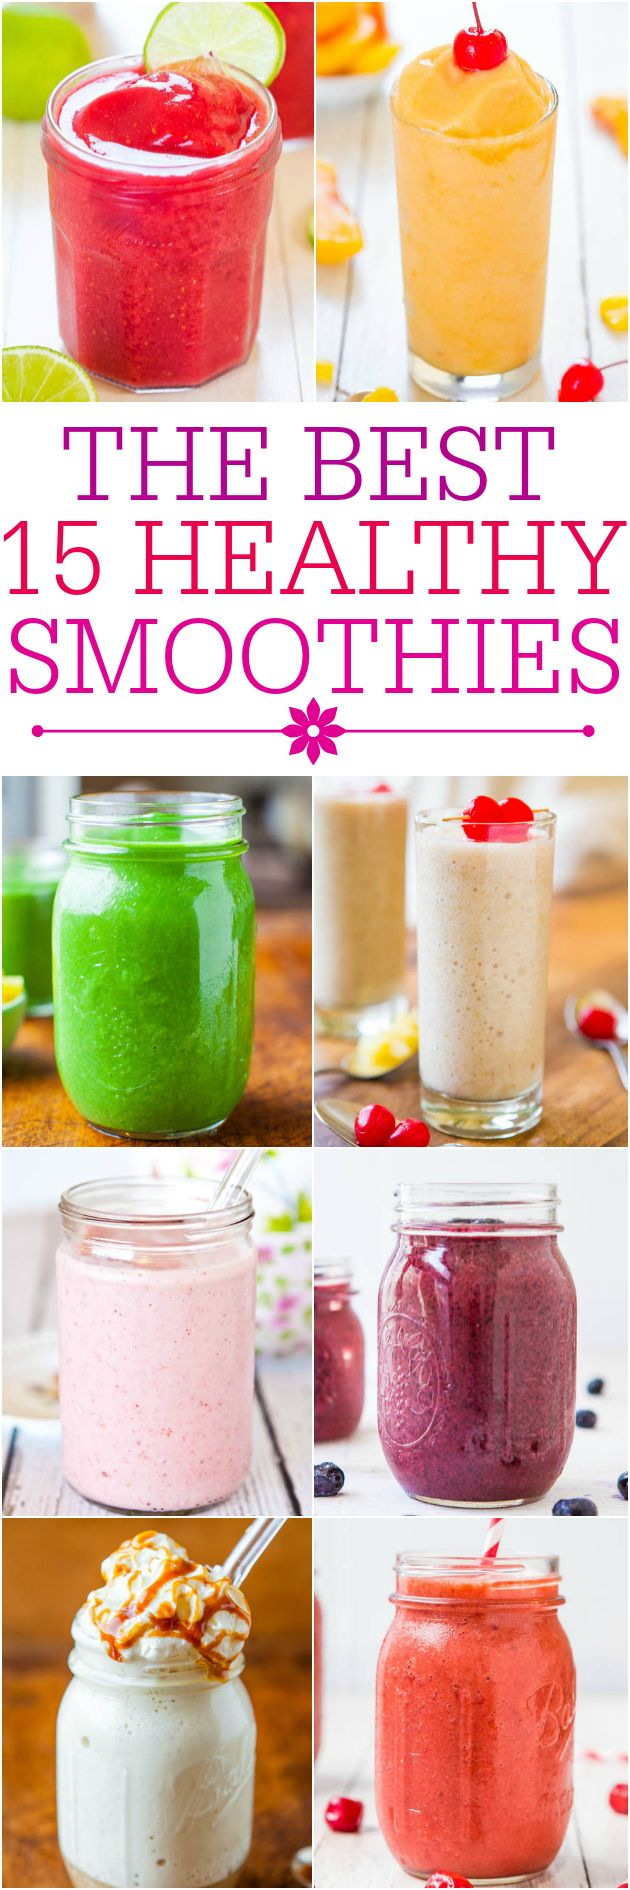 The Best 15 Healthy Smoothi